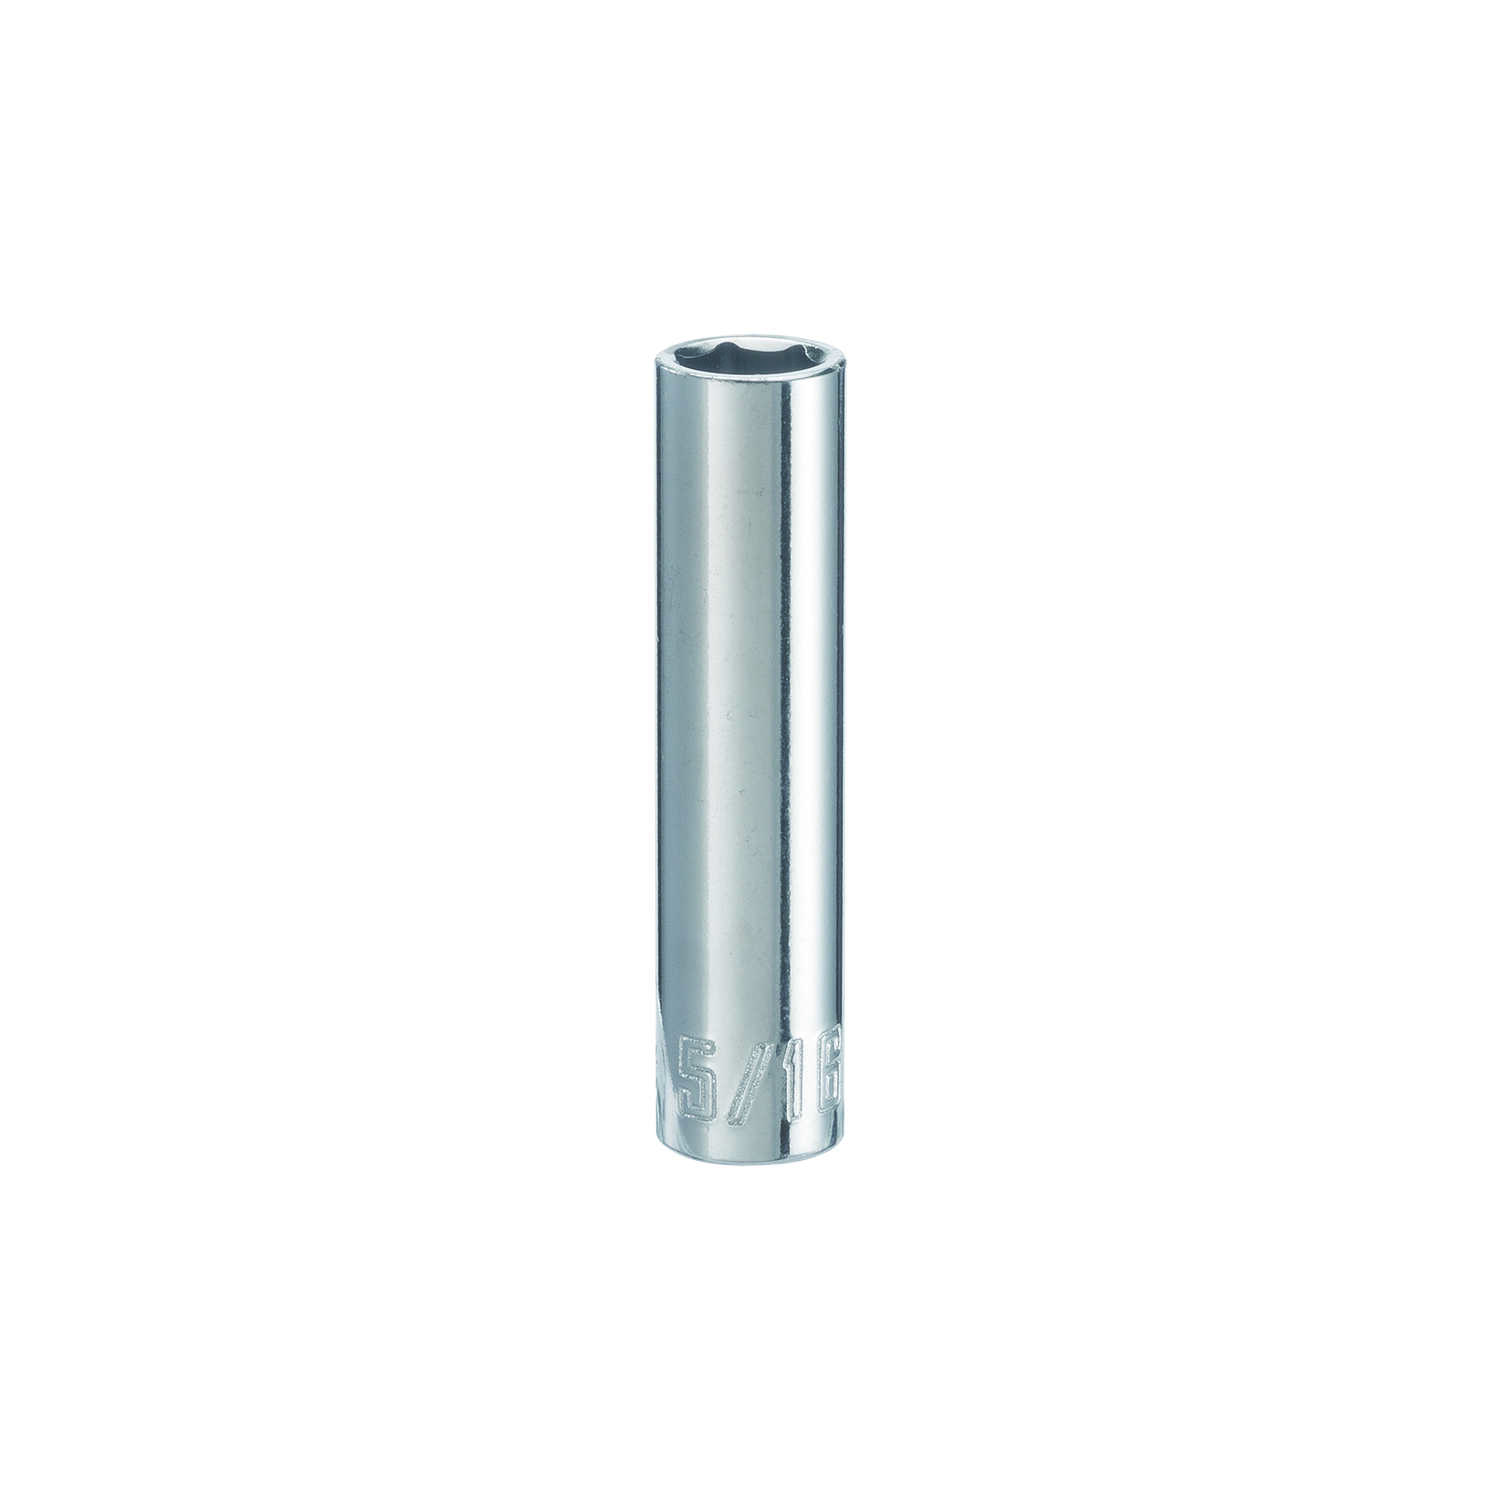 Craftsman  5/16 in.  x 1/4 in. drive  SAE  6 Point Deep  Socket  1 pc.